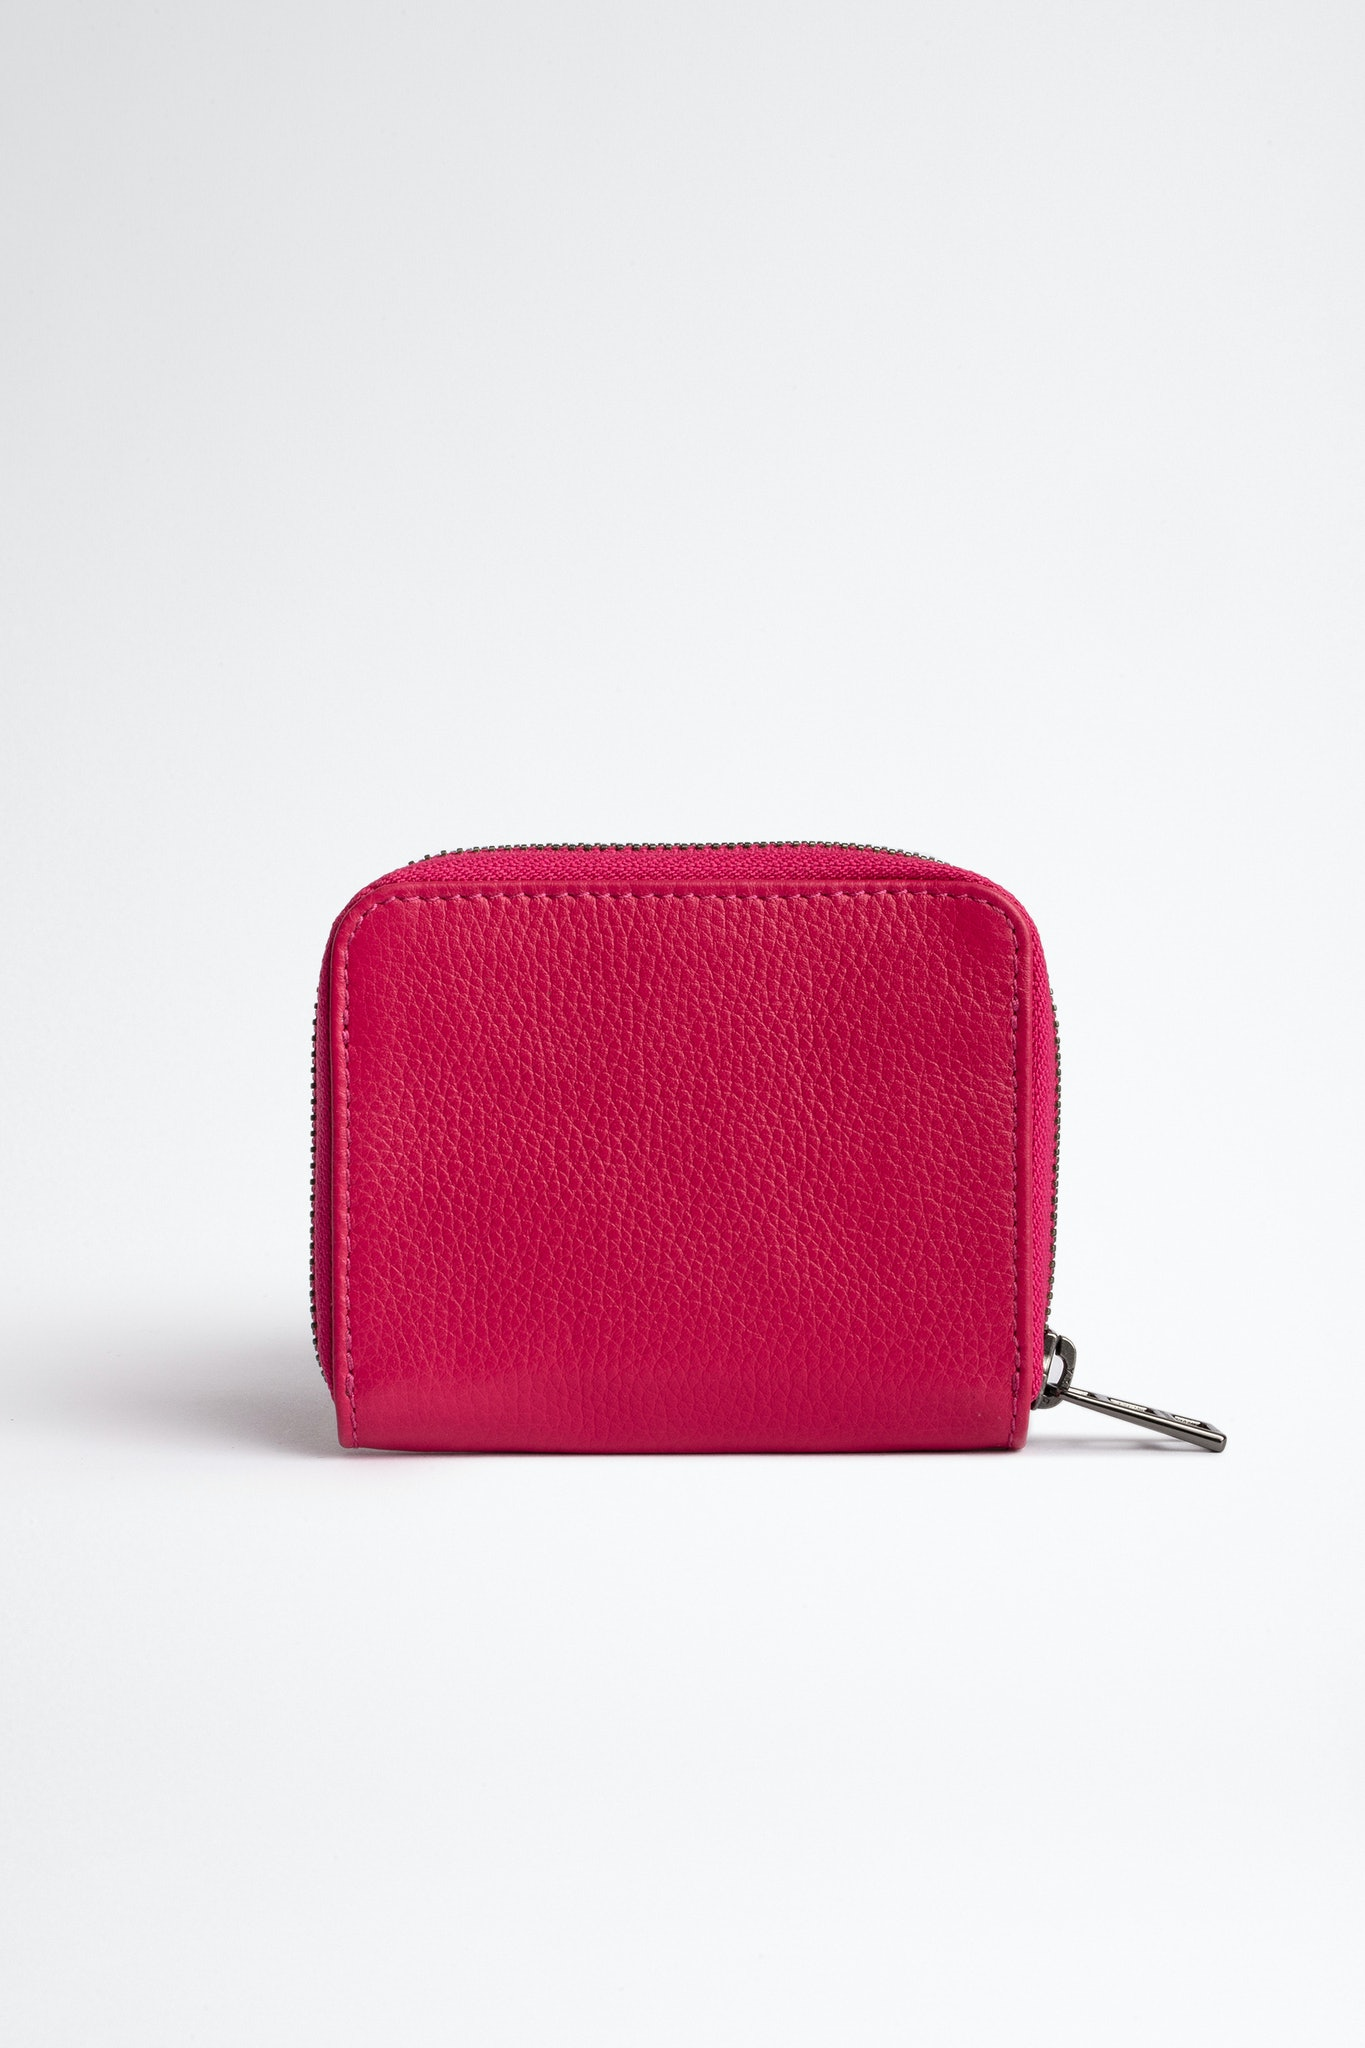 Grained Leather ZV Mini Wallet